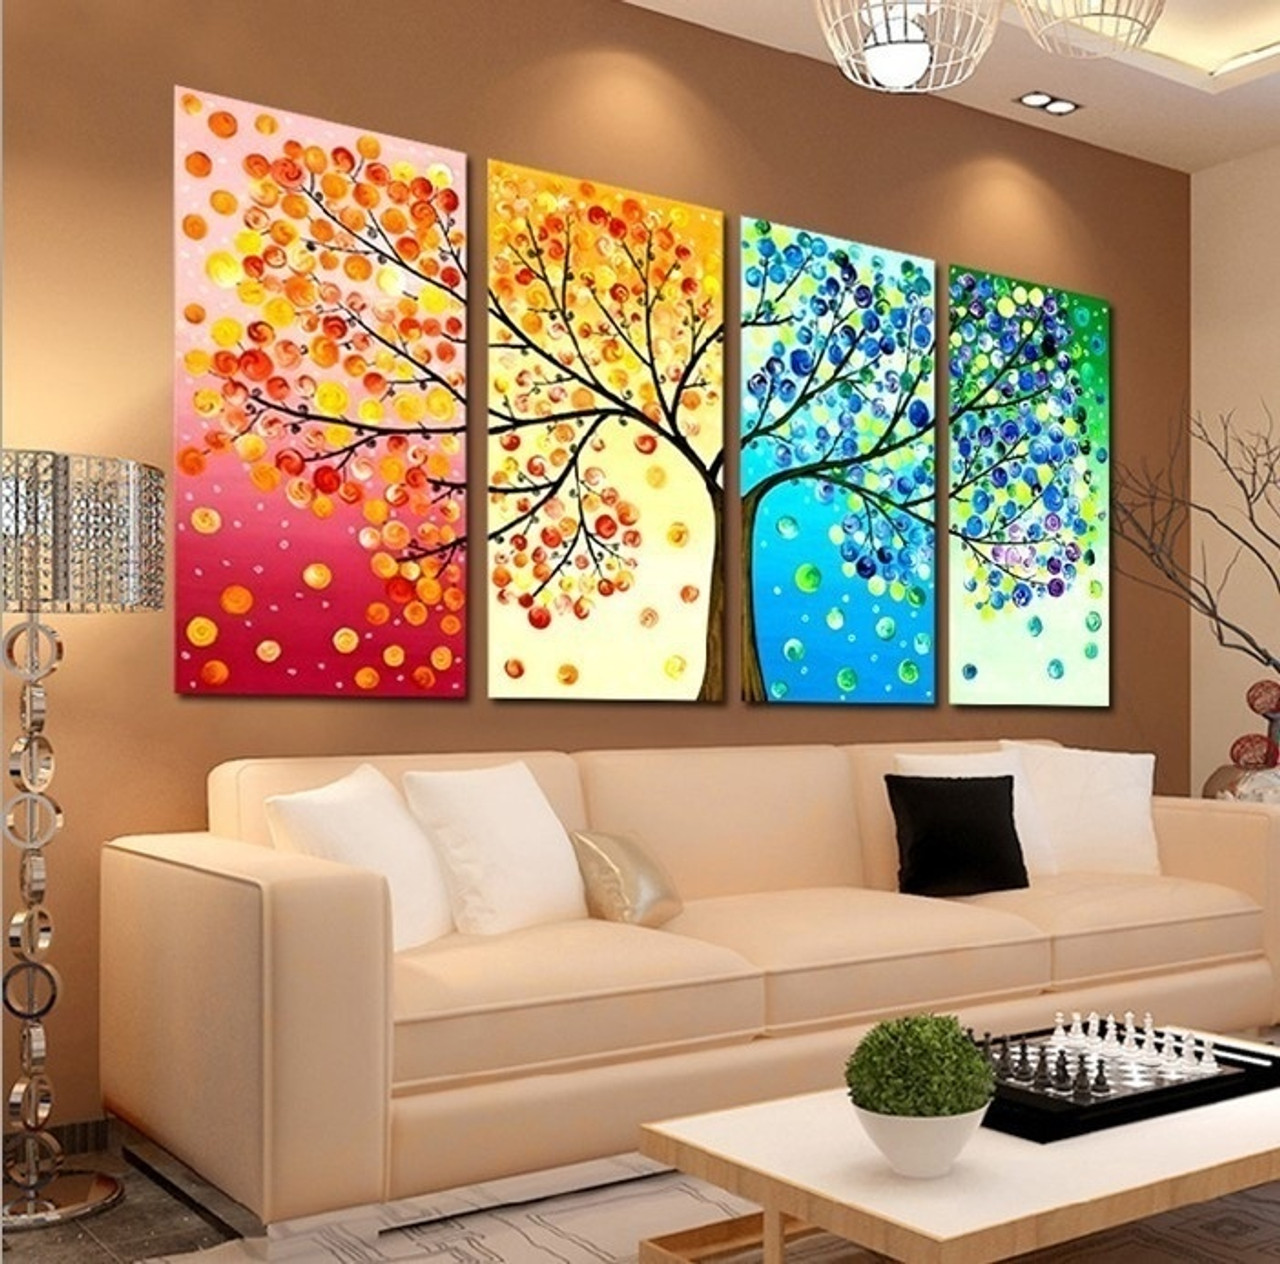 Unframe Wall Art Canvas Painting Decoration For Living Room Picture Colourful Leaf Trees Spray